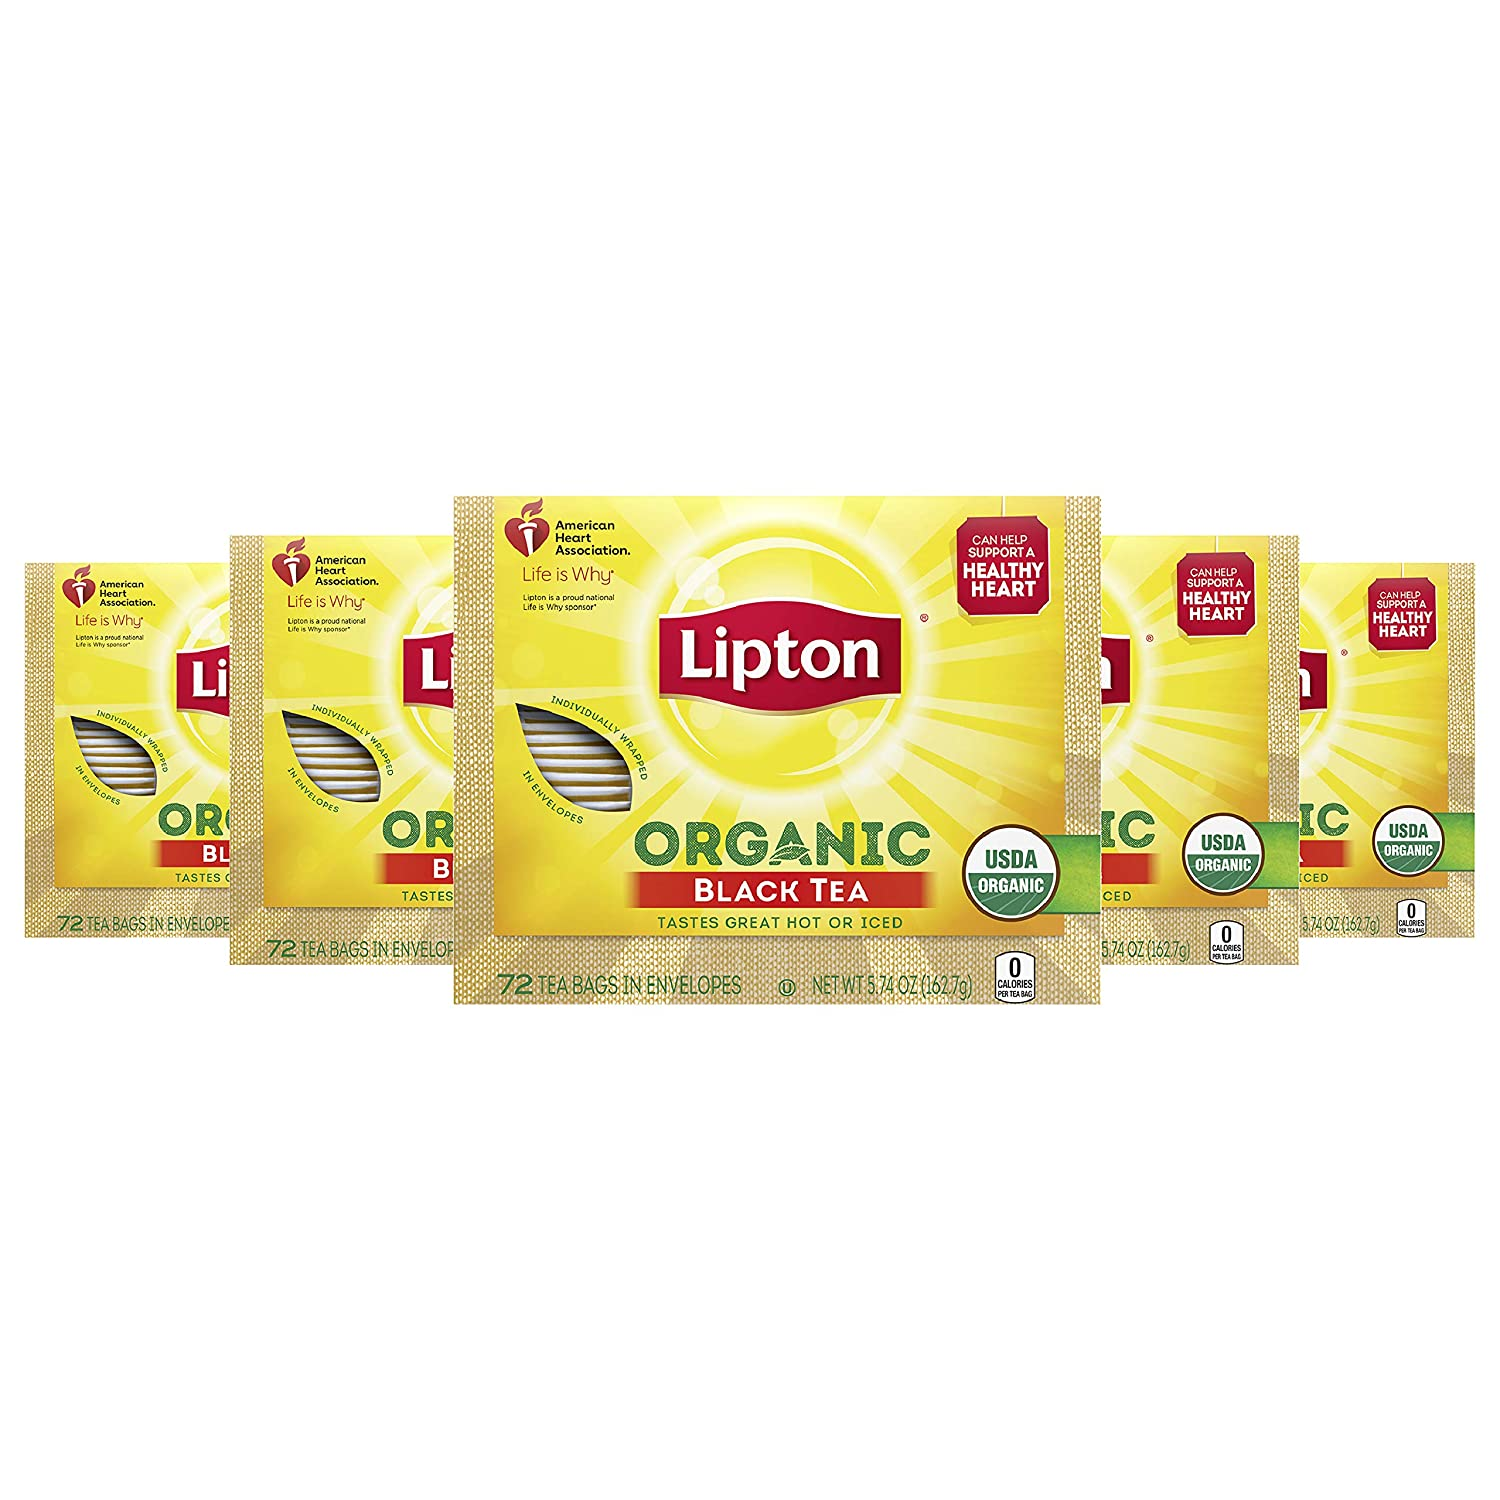 Lipton Organic Tea Bags Tastes Great Hot or Iced Organic Black Tea Can Help Support a Healthy Heart 5.74 oz 72 Count, Pack of 5